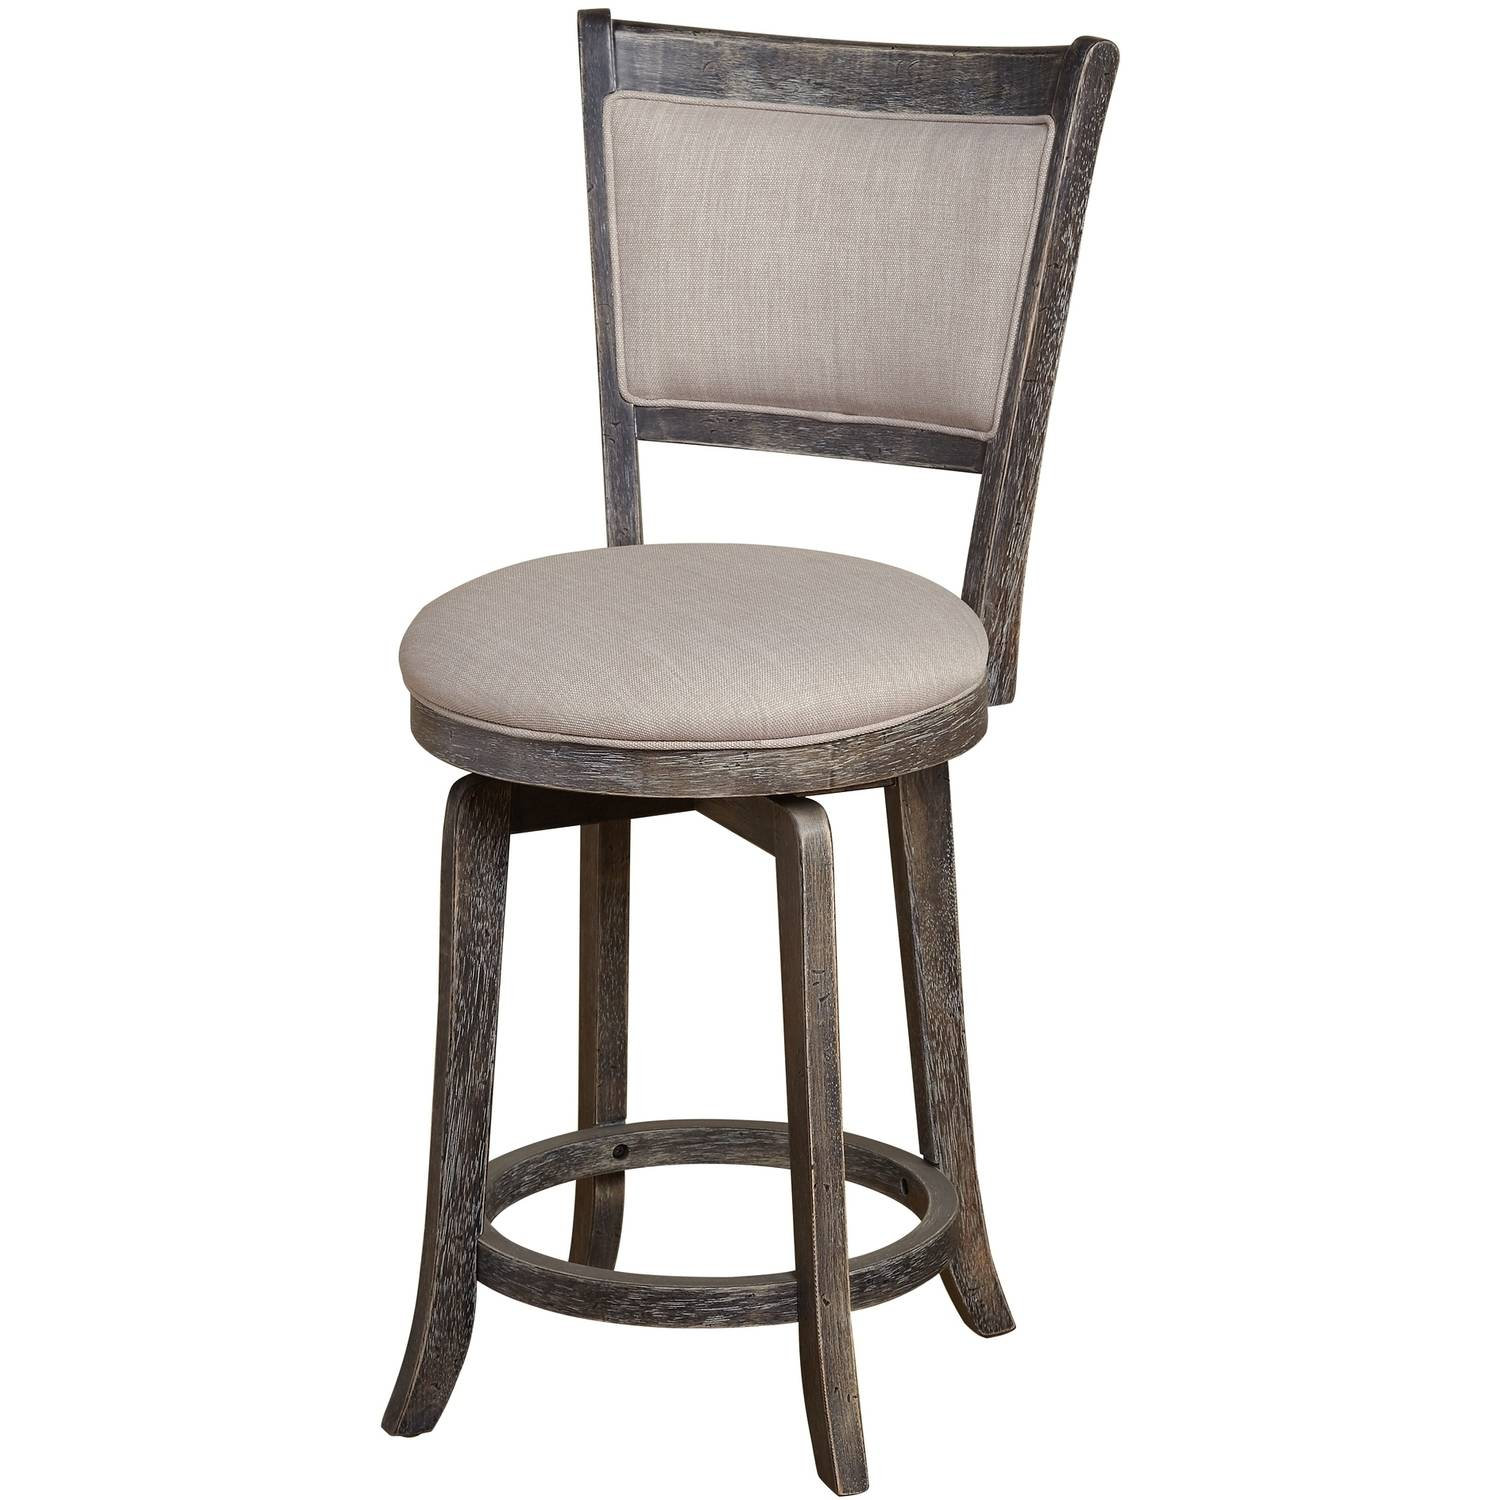 Amazing French Country Swivel Counter Height Stool Walmart Com Gmtry Best Dining Table And Chair Ideas Images Gmtryco